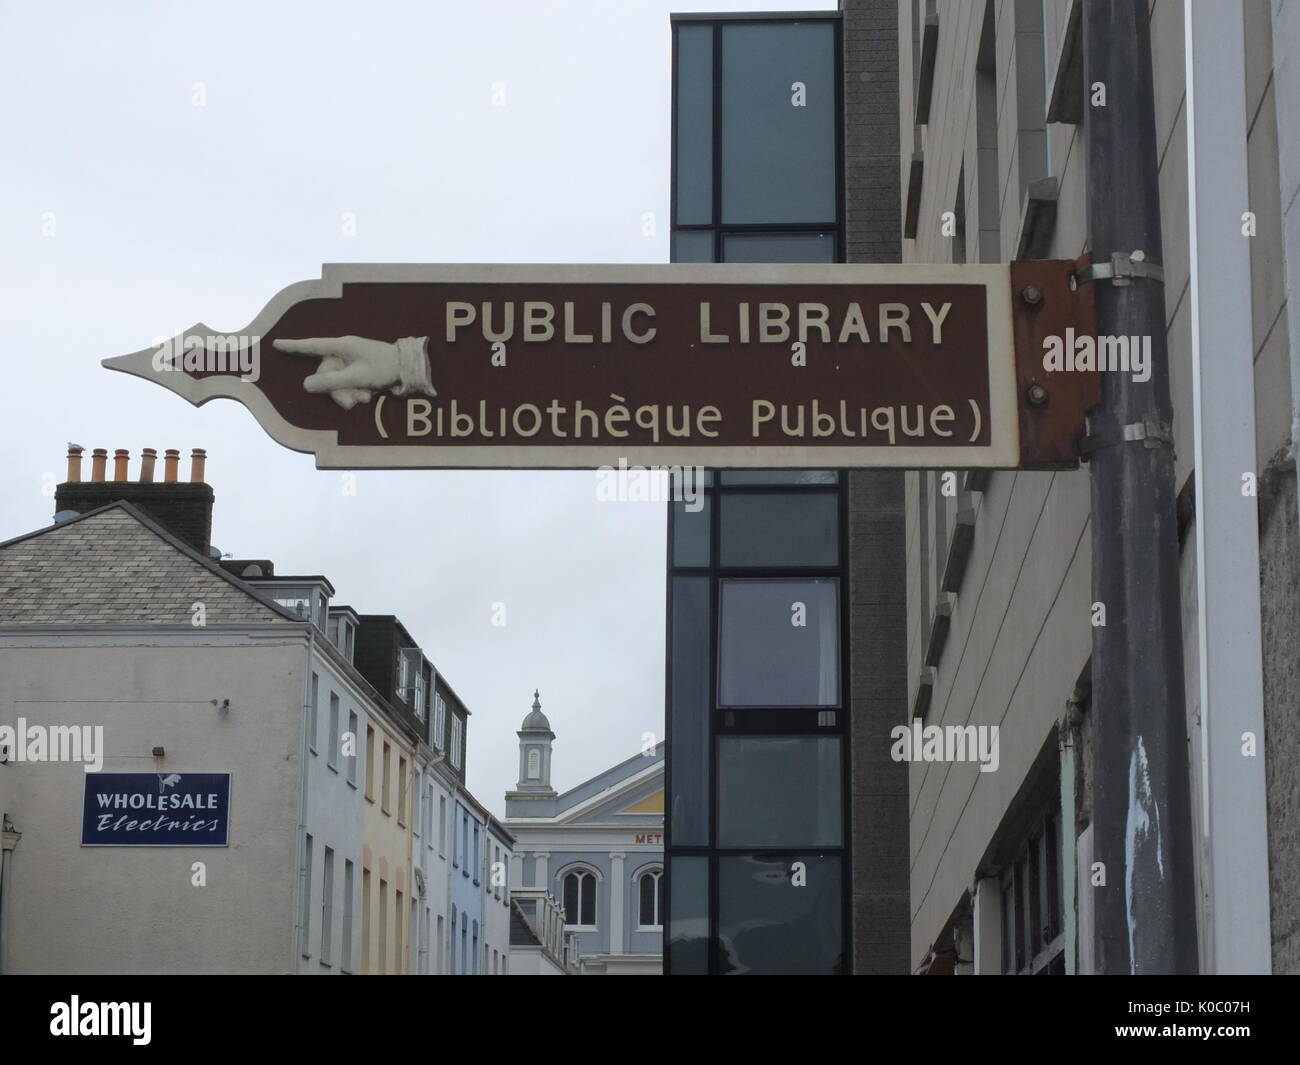 Ornate metal sign for a public library with manicule in dual language of English and Jèrriais (Norman French Language of Jersey), St Helier, Jersey - Stock Image